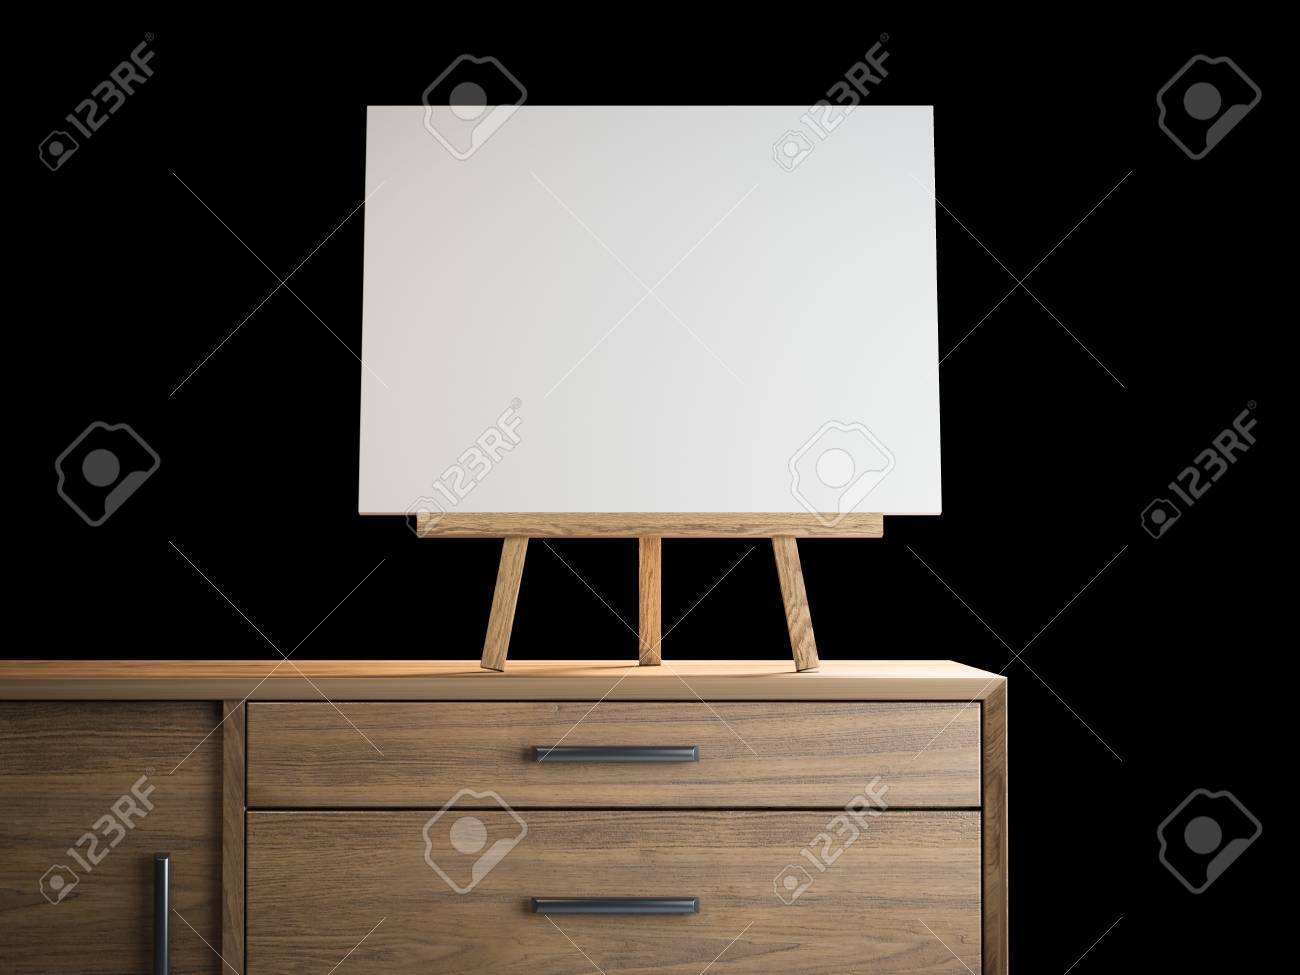 small easel with blank frame 3d rendering stock photo picture and